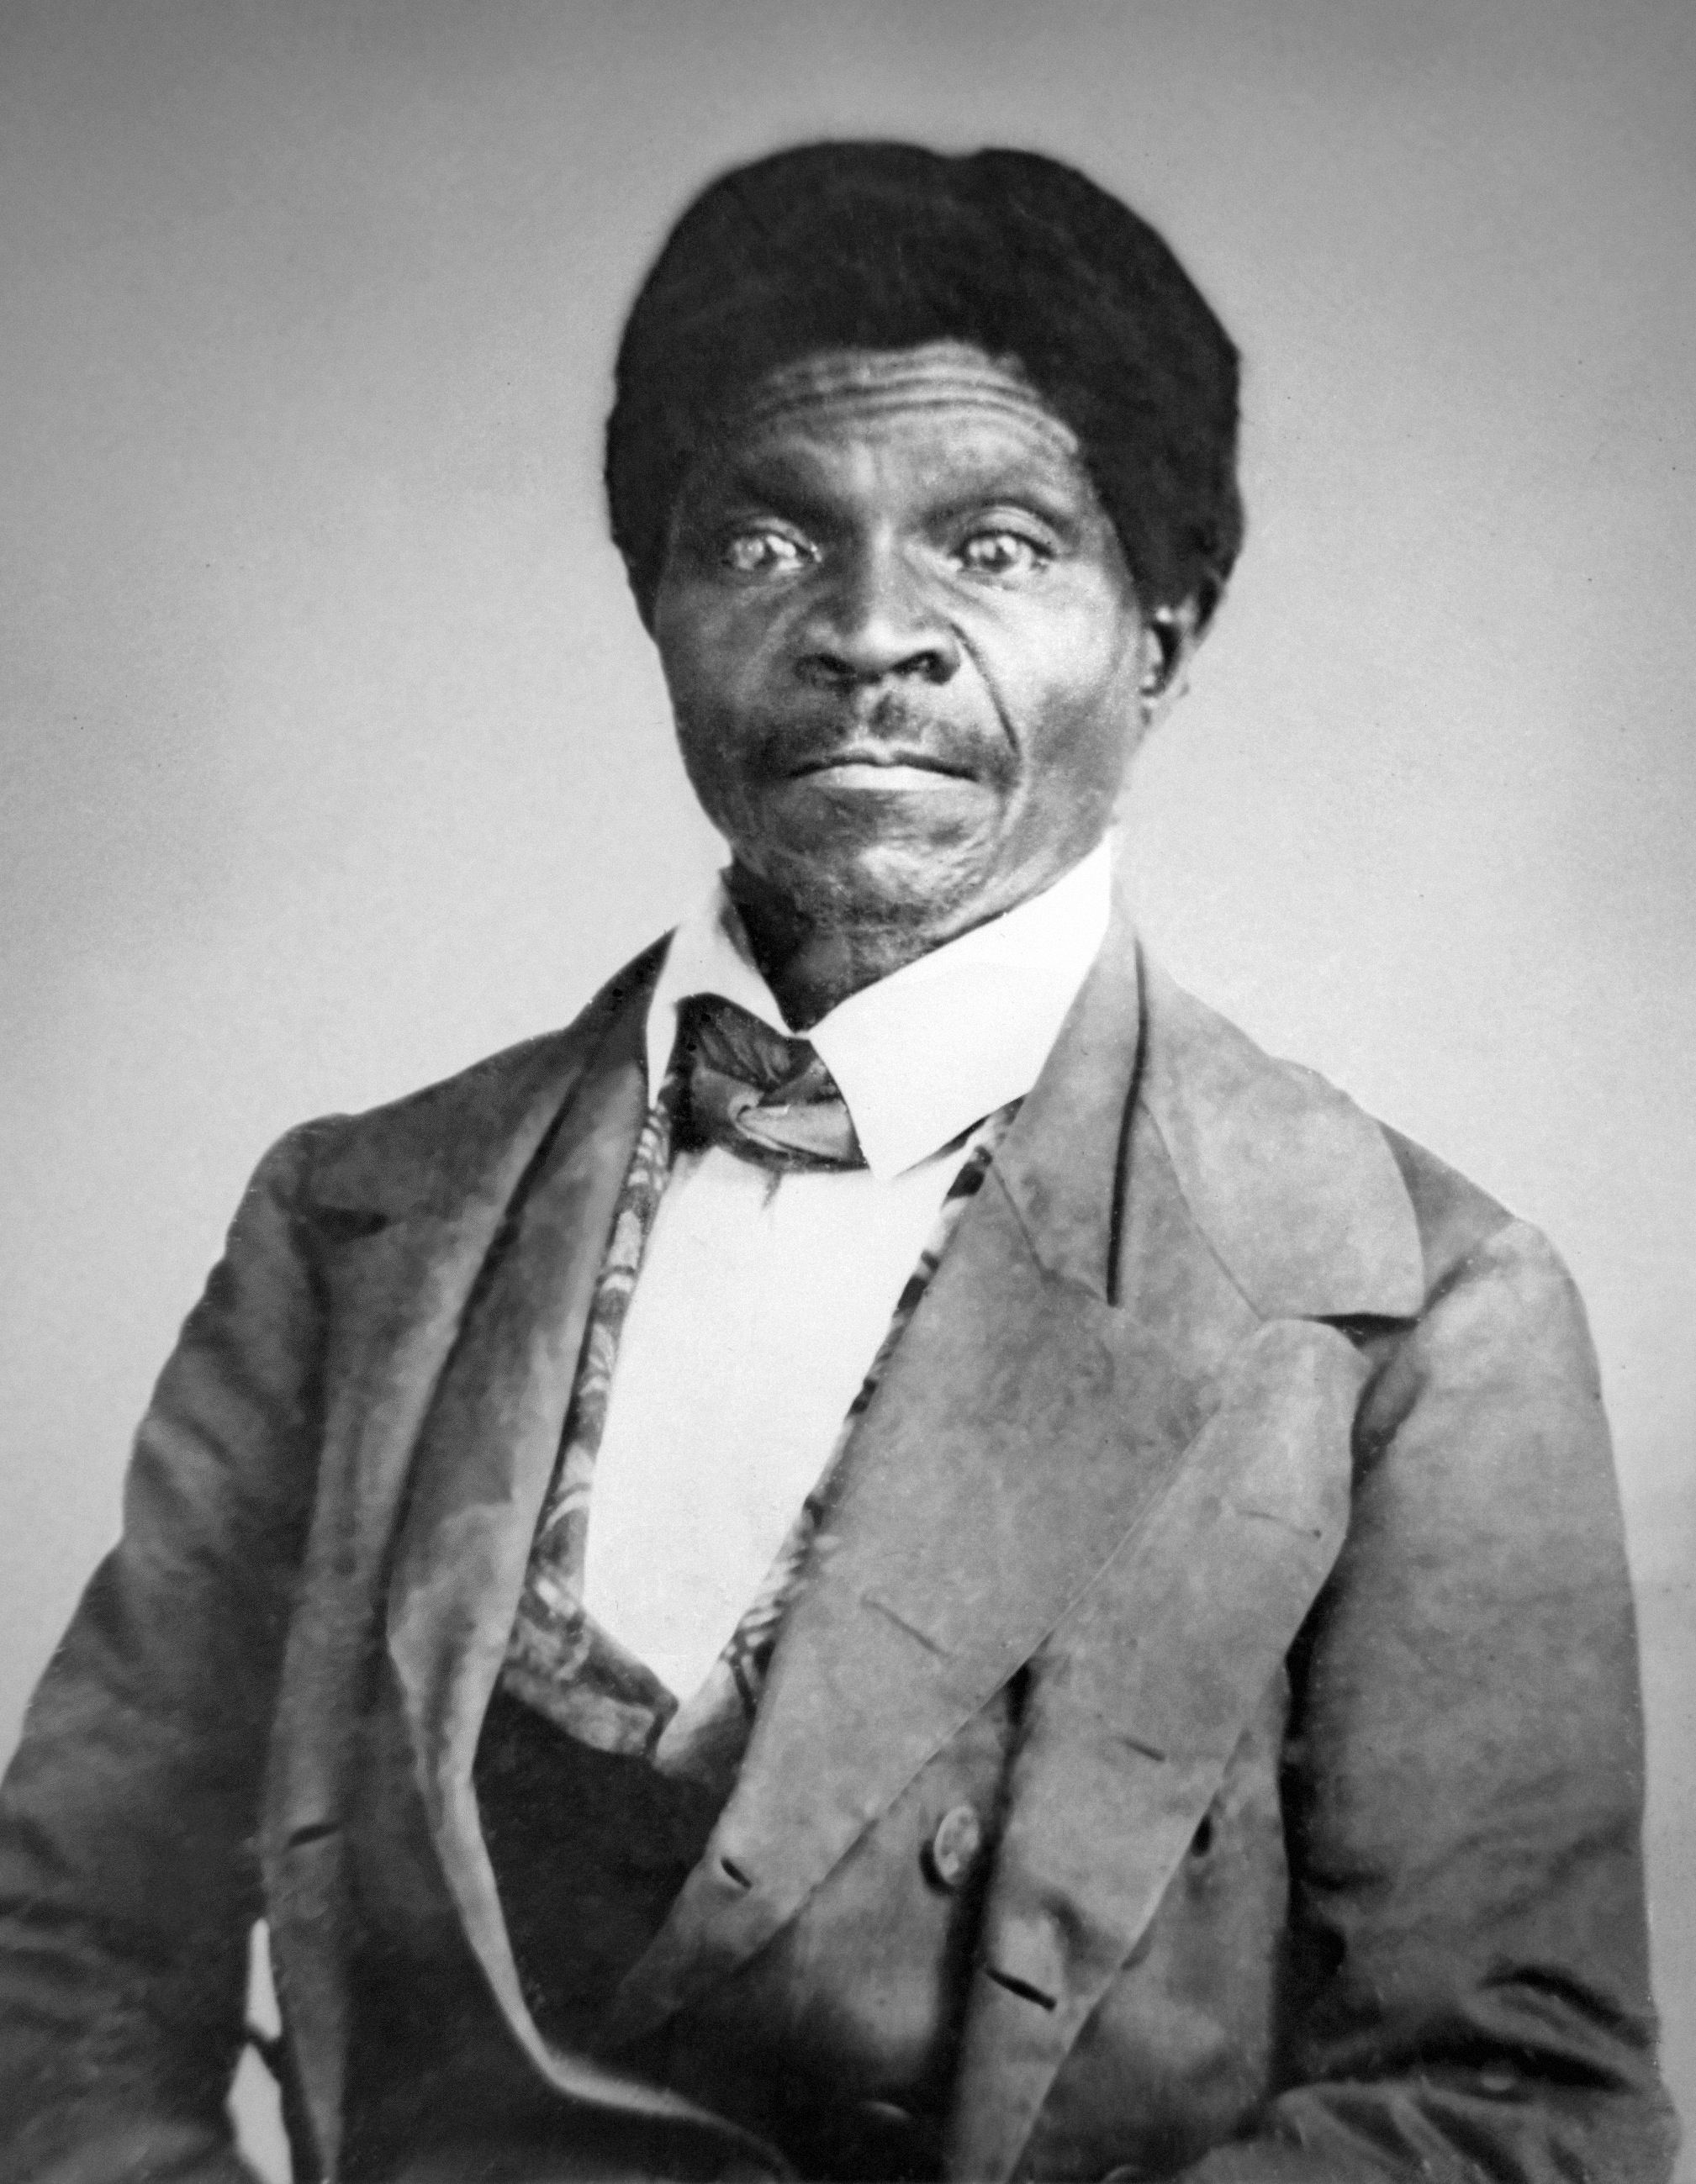 dred scott When dred scott v sandford was decided in 1857, the court decision ruled that enslaved africans and their descendants weren't and could never be citizens of the united states, whether they were free or not.